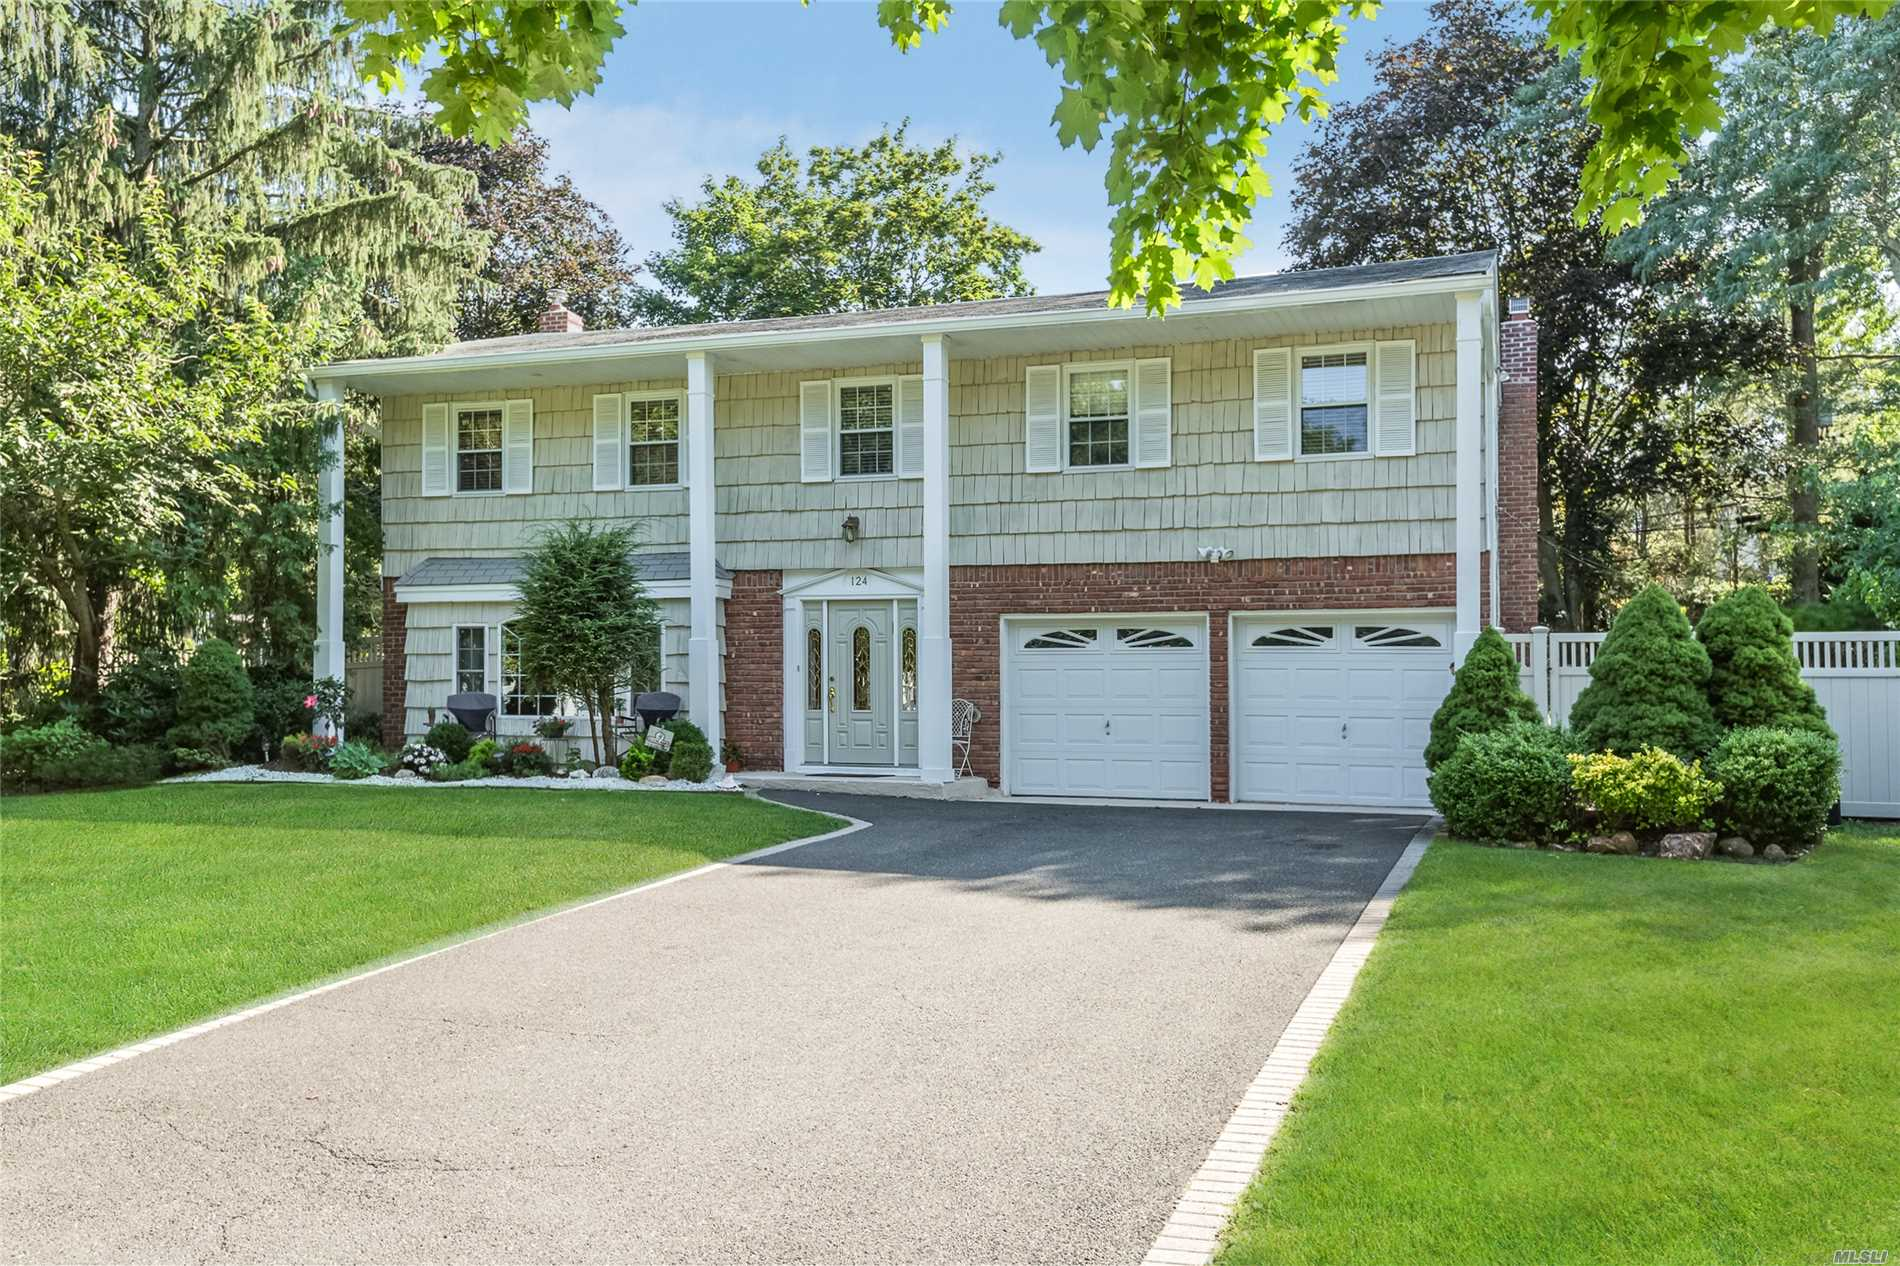 124 Plymouth Blvd - Smithtown, New York